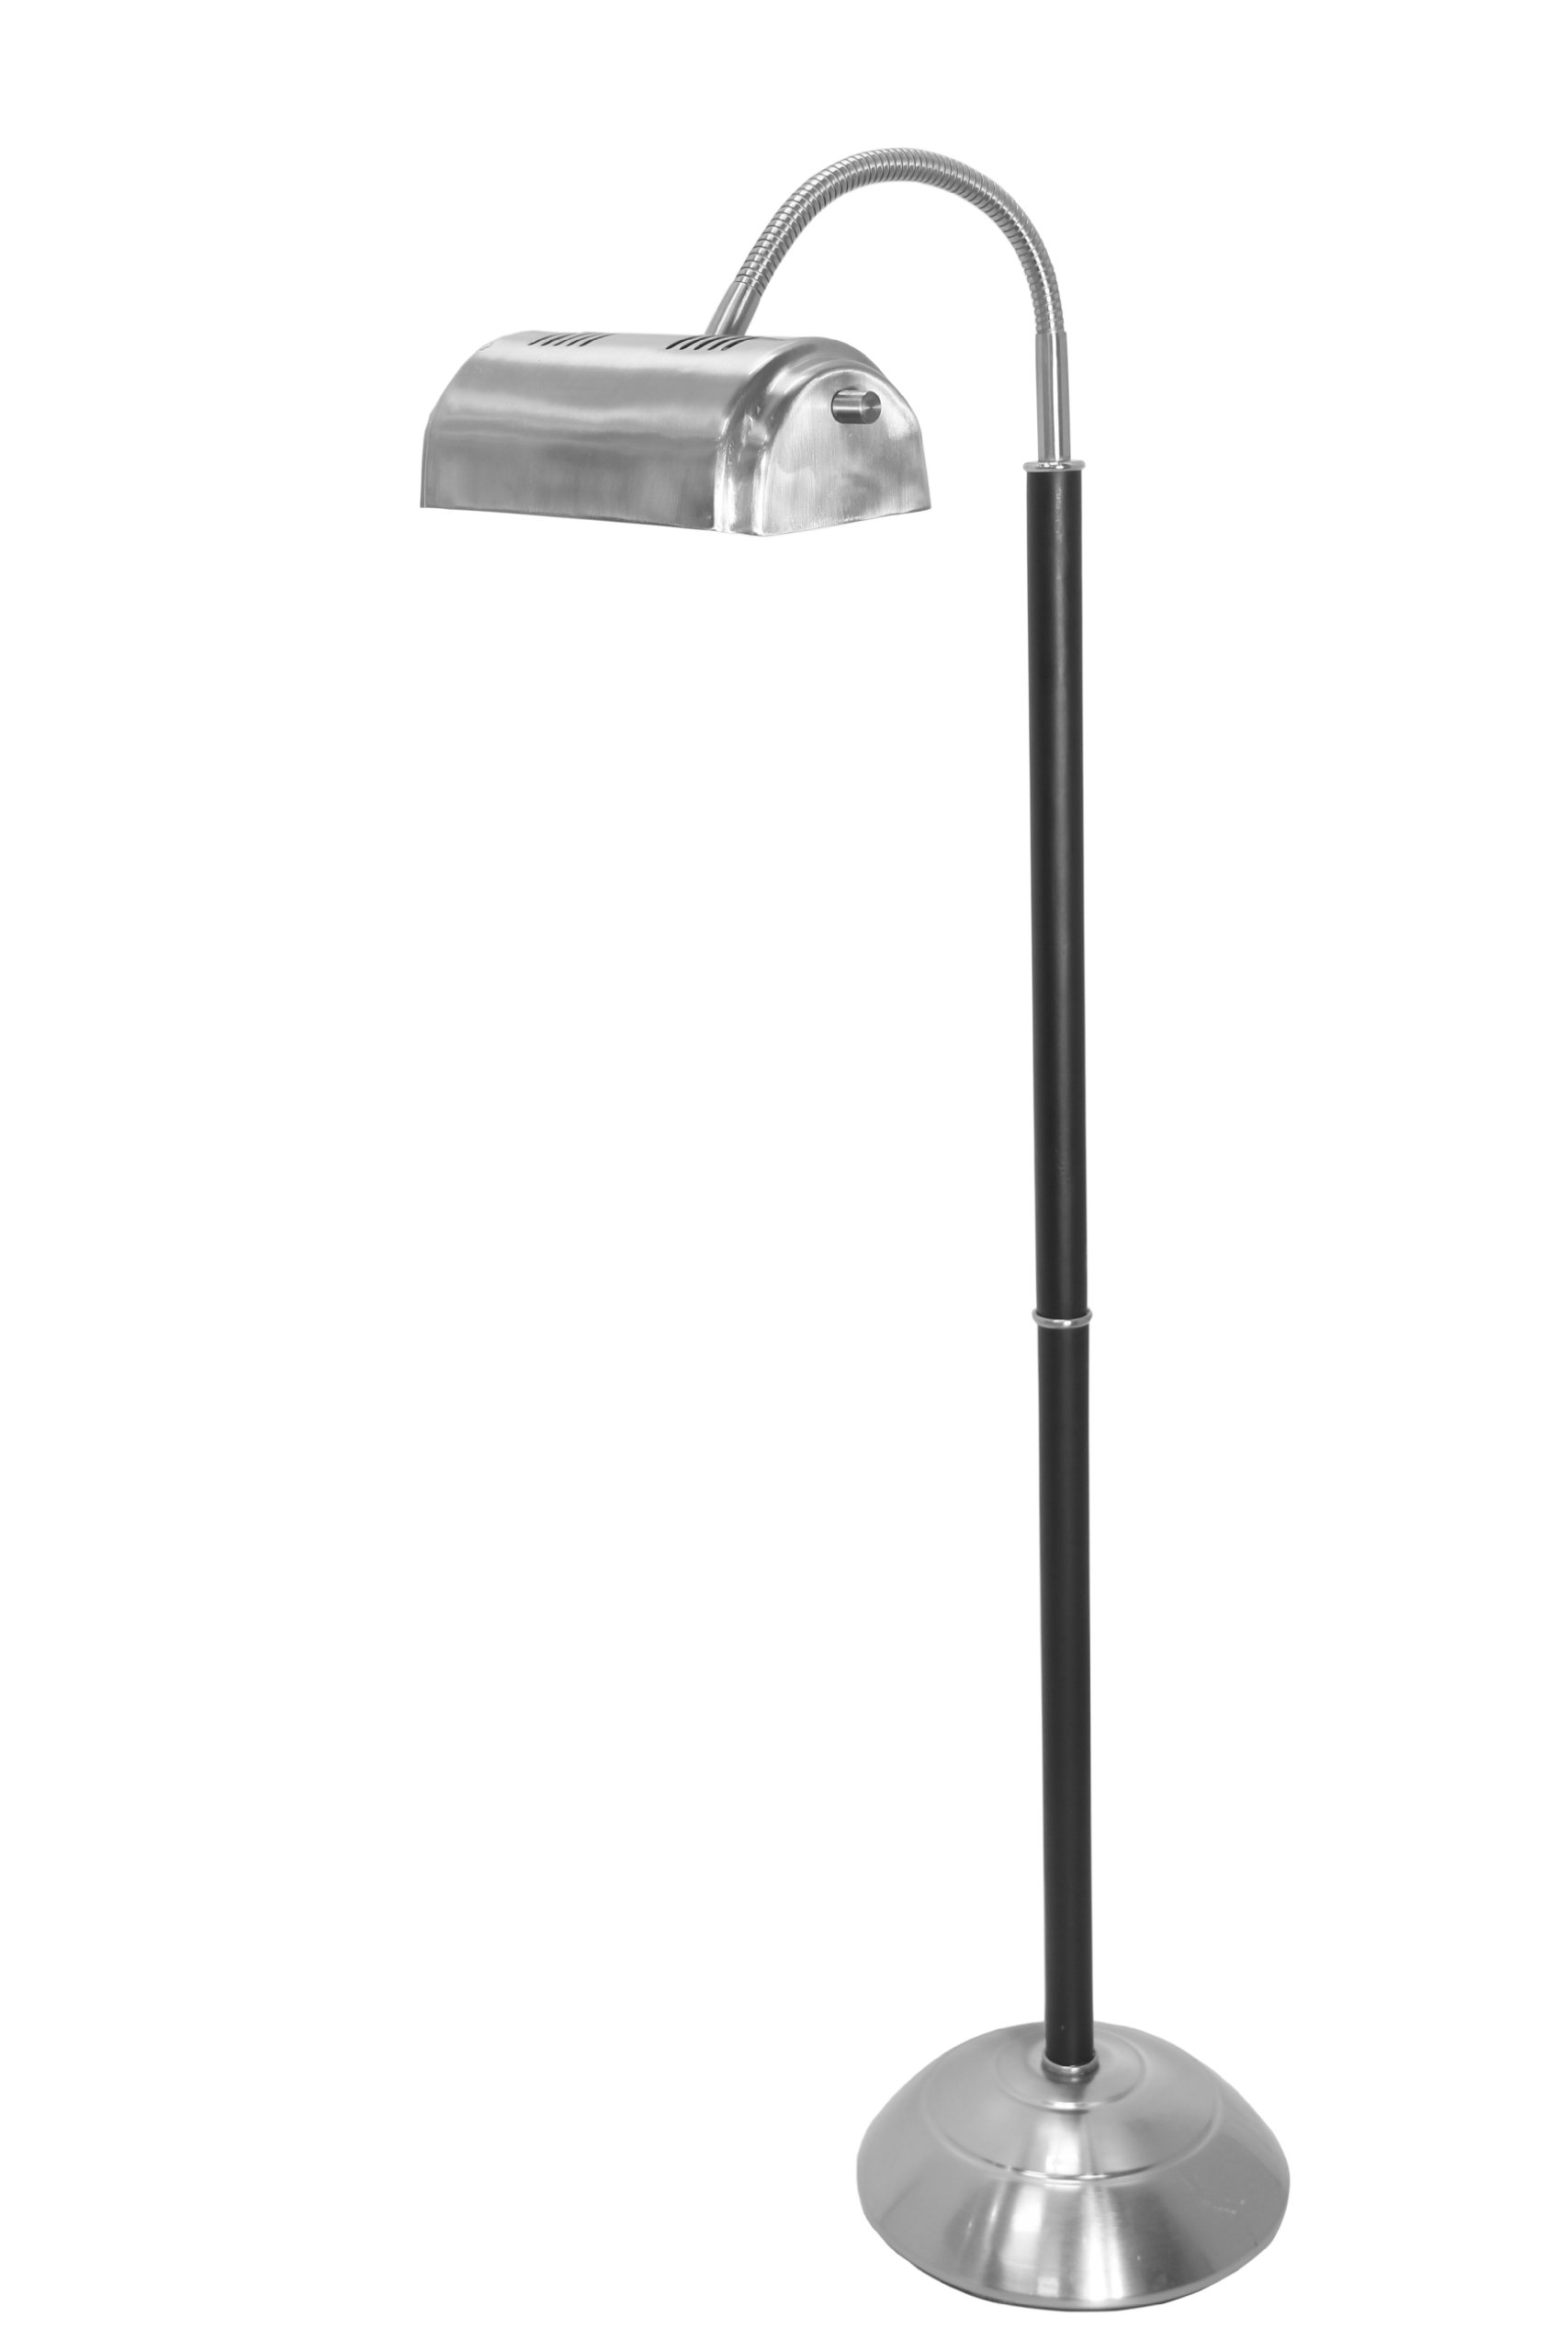 daylight24 402042-15 55W Natural Day Light Floor Lamp, Brushed Steel